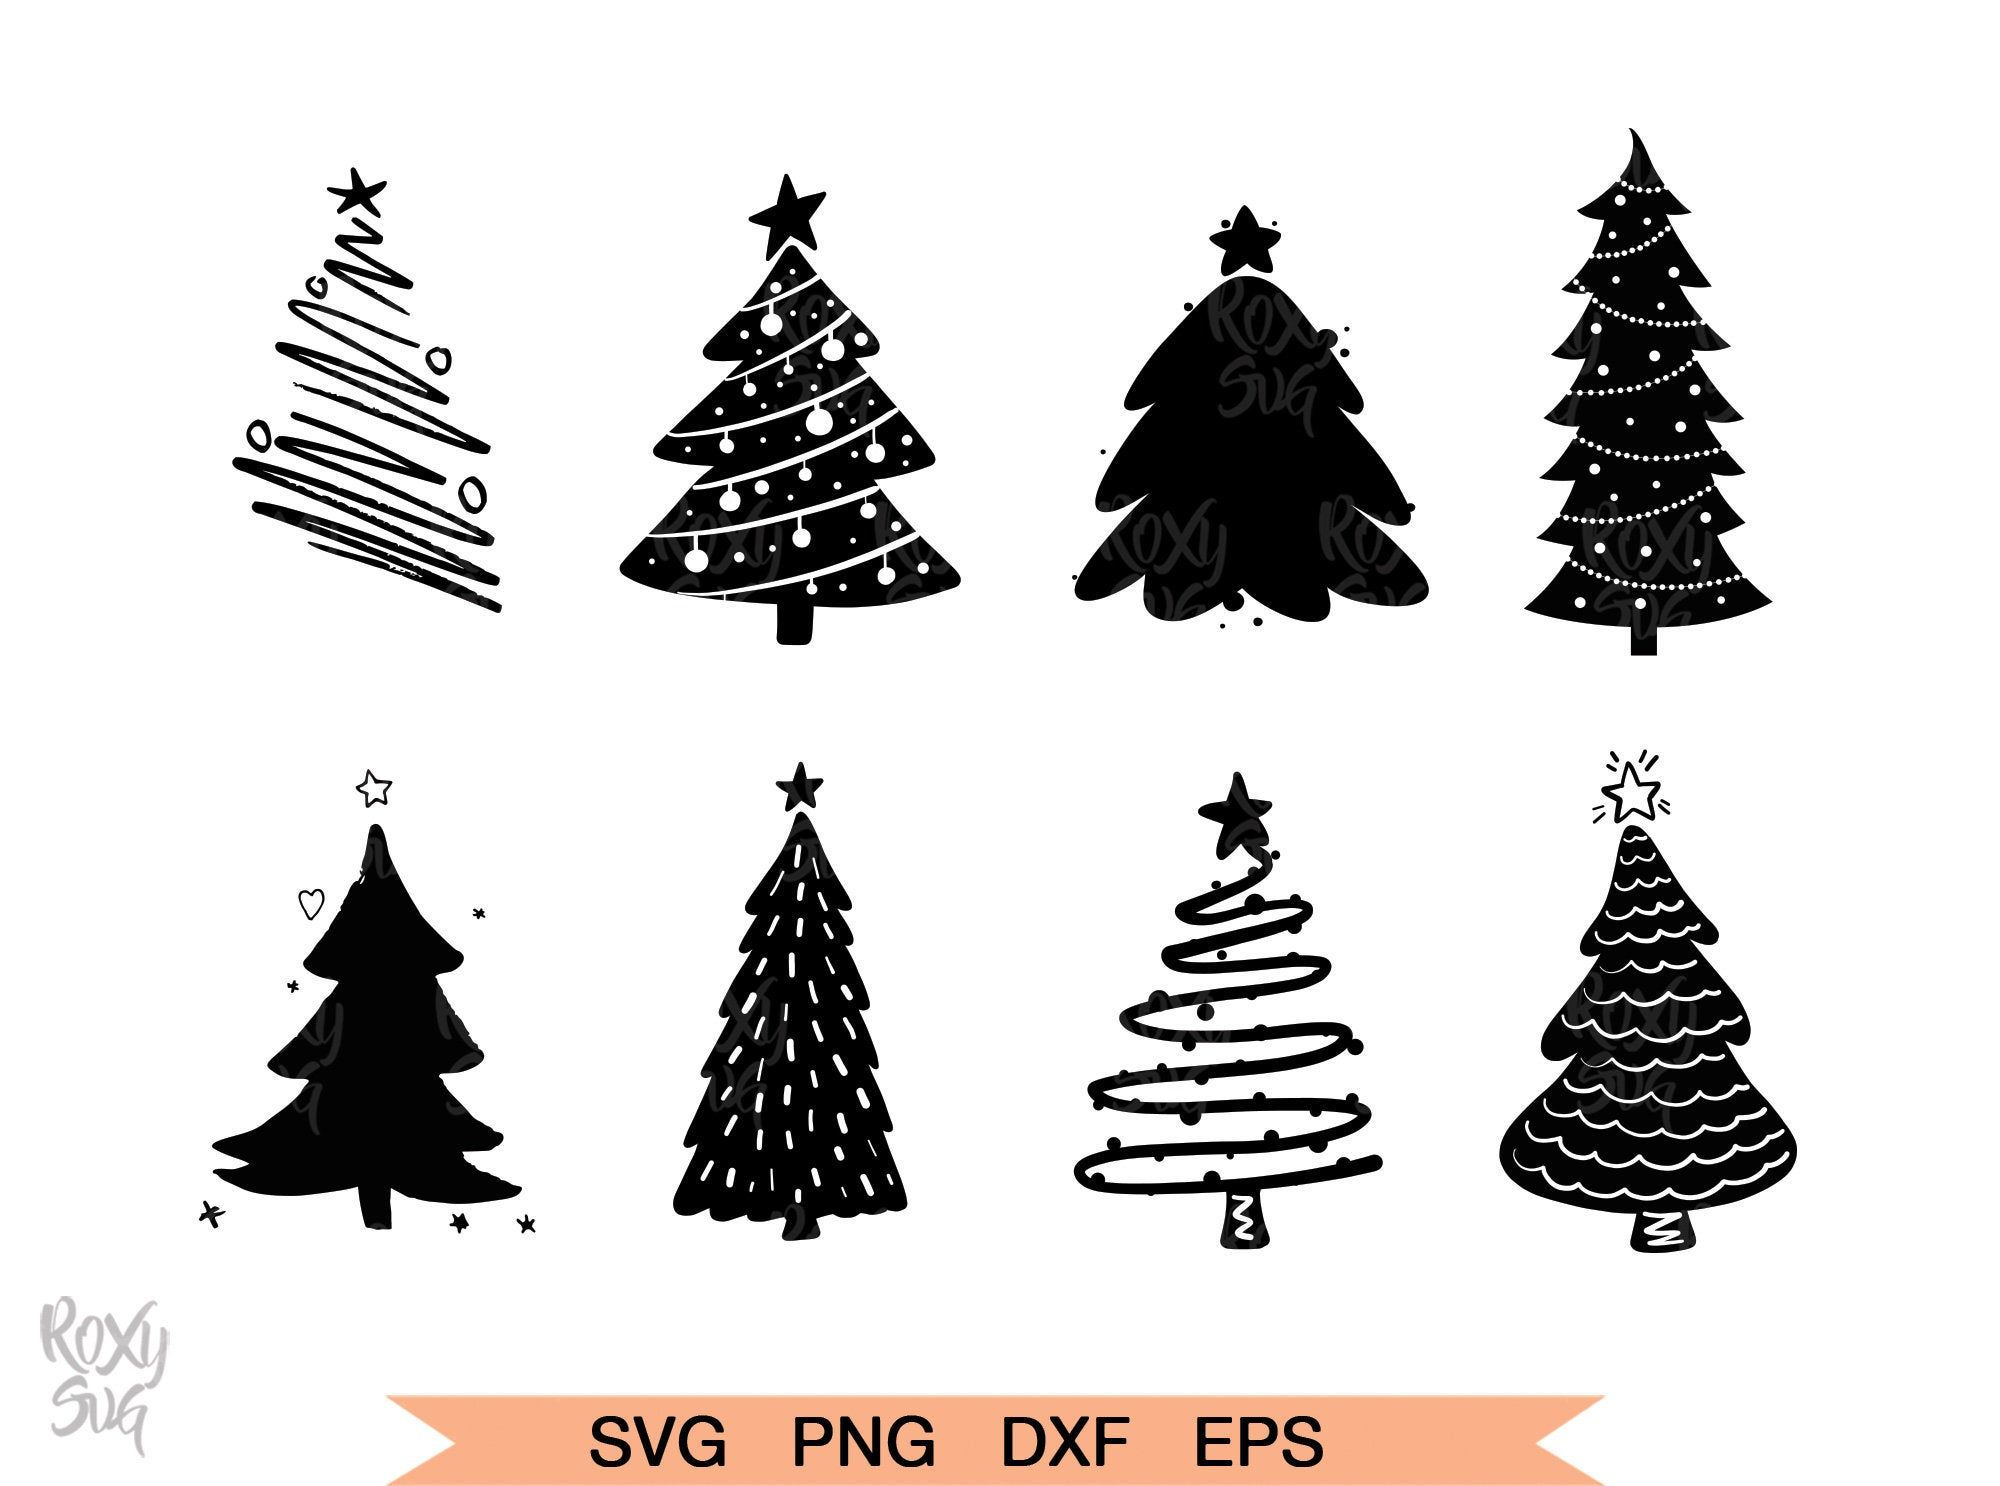 Christmas Tree Svg Christmas Svg Christmas Tree Silhouette Etsy In 2020 Christmas Tree Silhouette Christmas Svg Files Christmas Tree Clipart